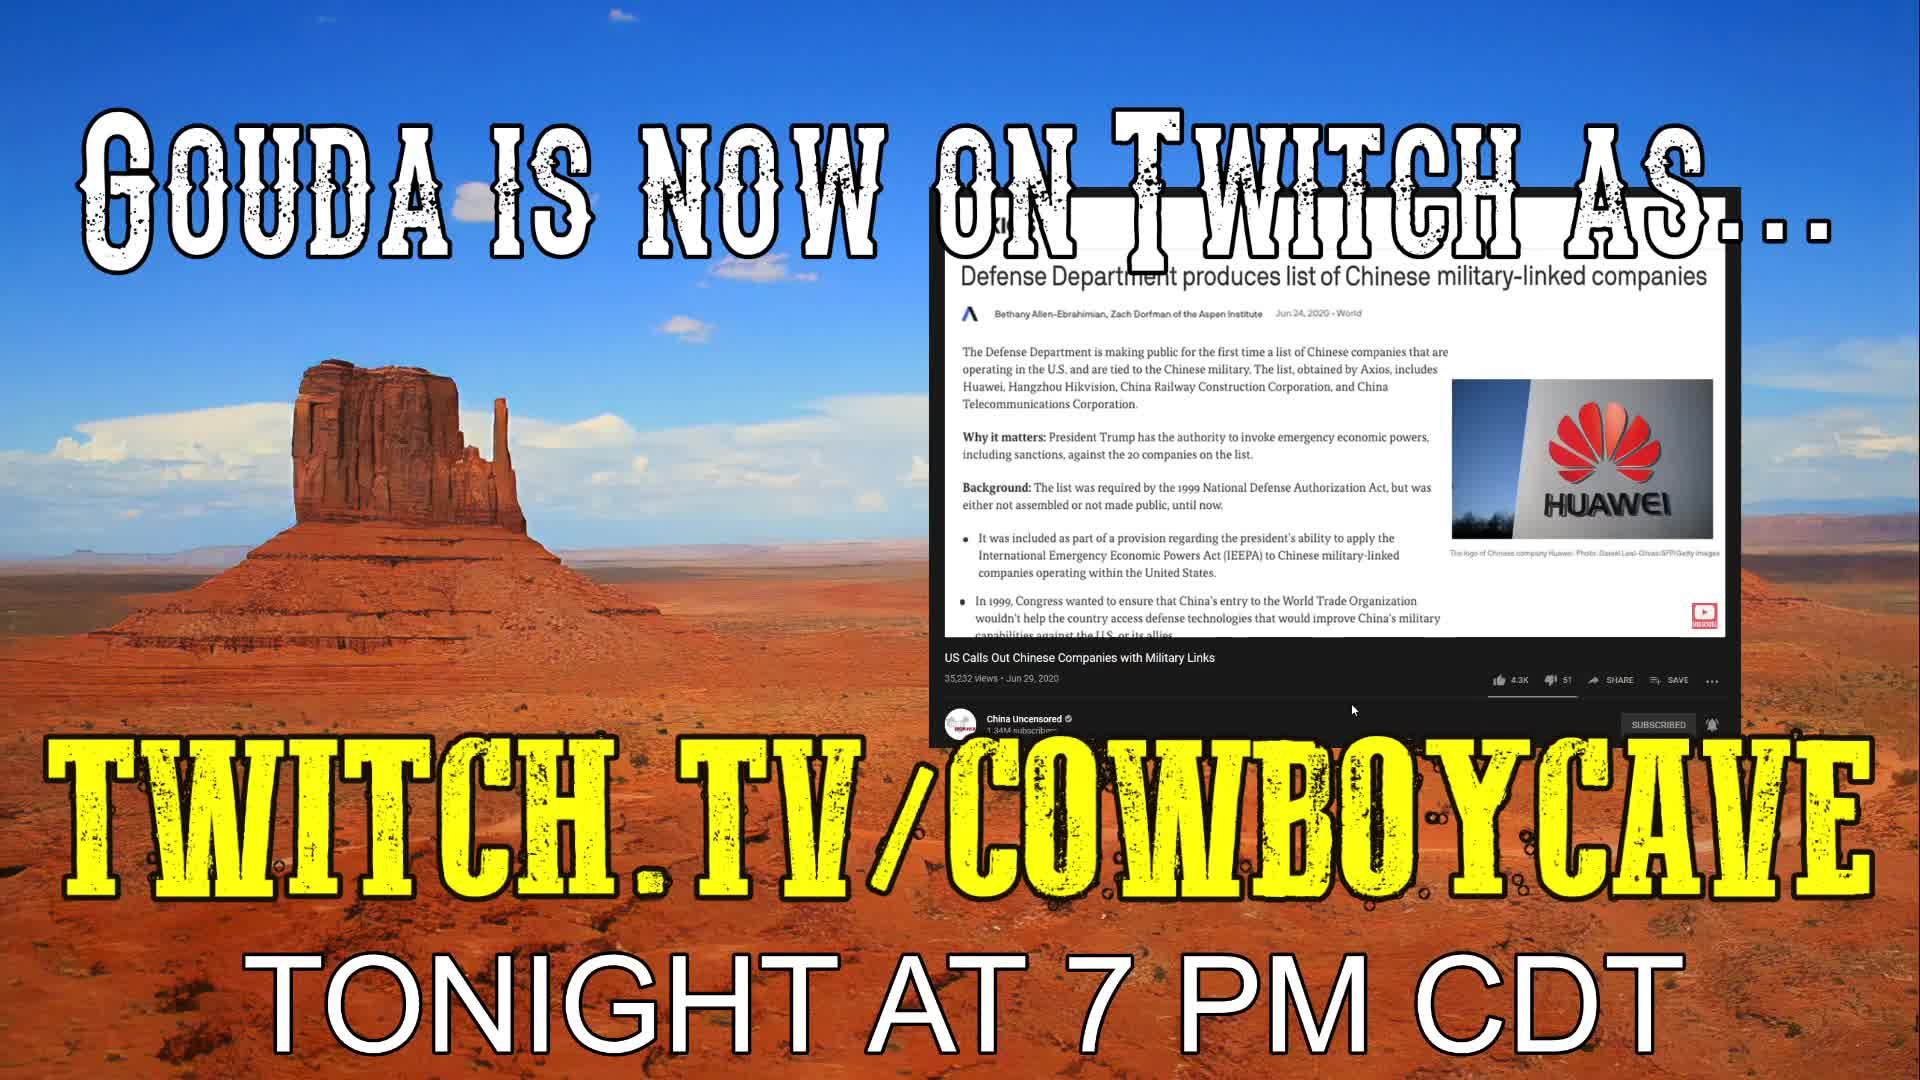 ONLY ON twitch.tv/CowboyCave